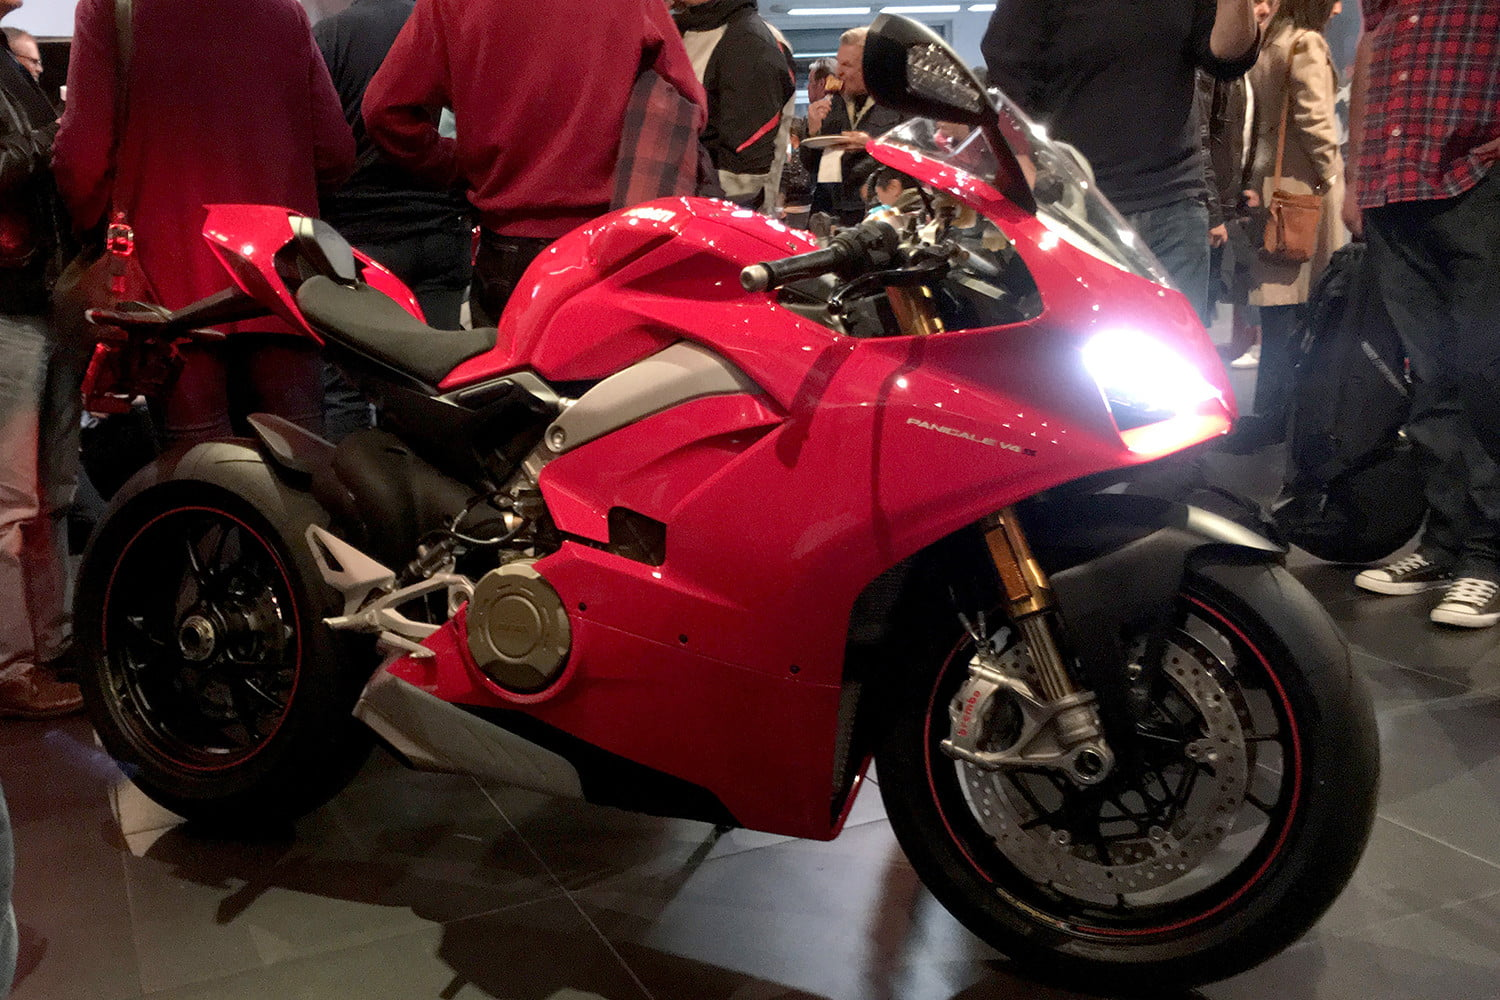 ducati 2018 motorcycle preview panigale v4 s nose fullled